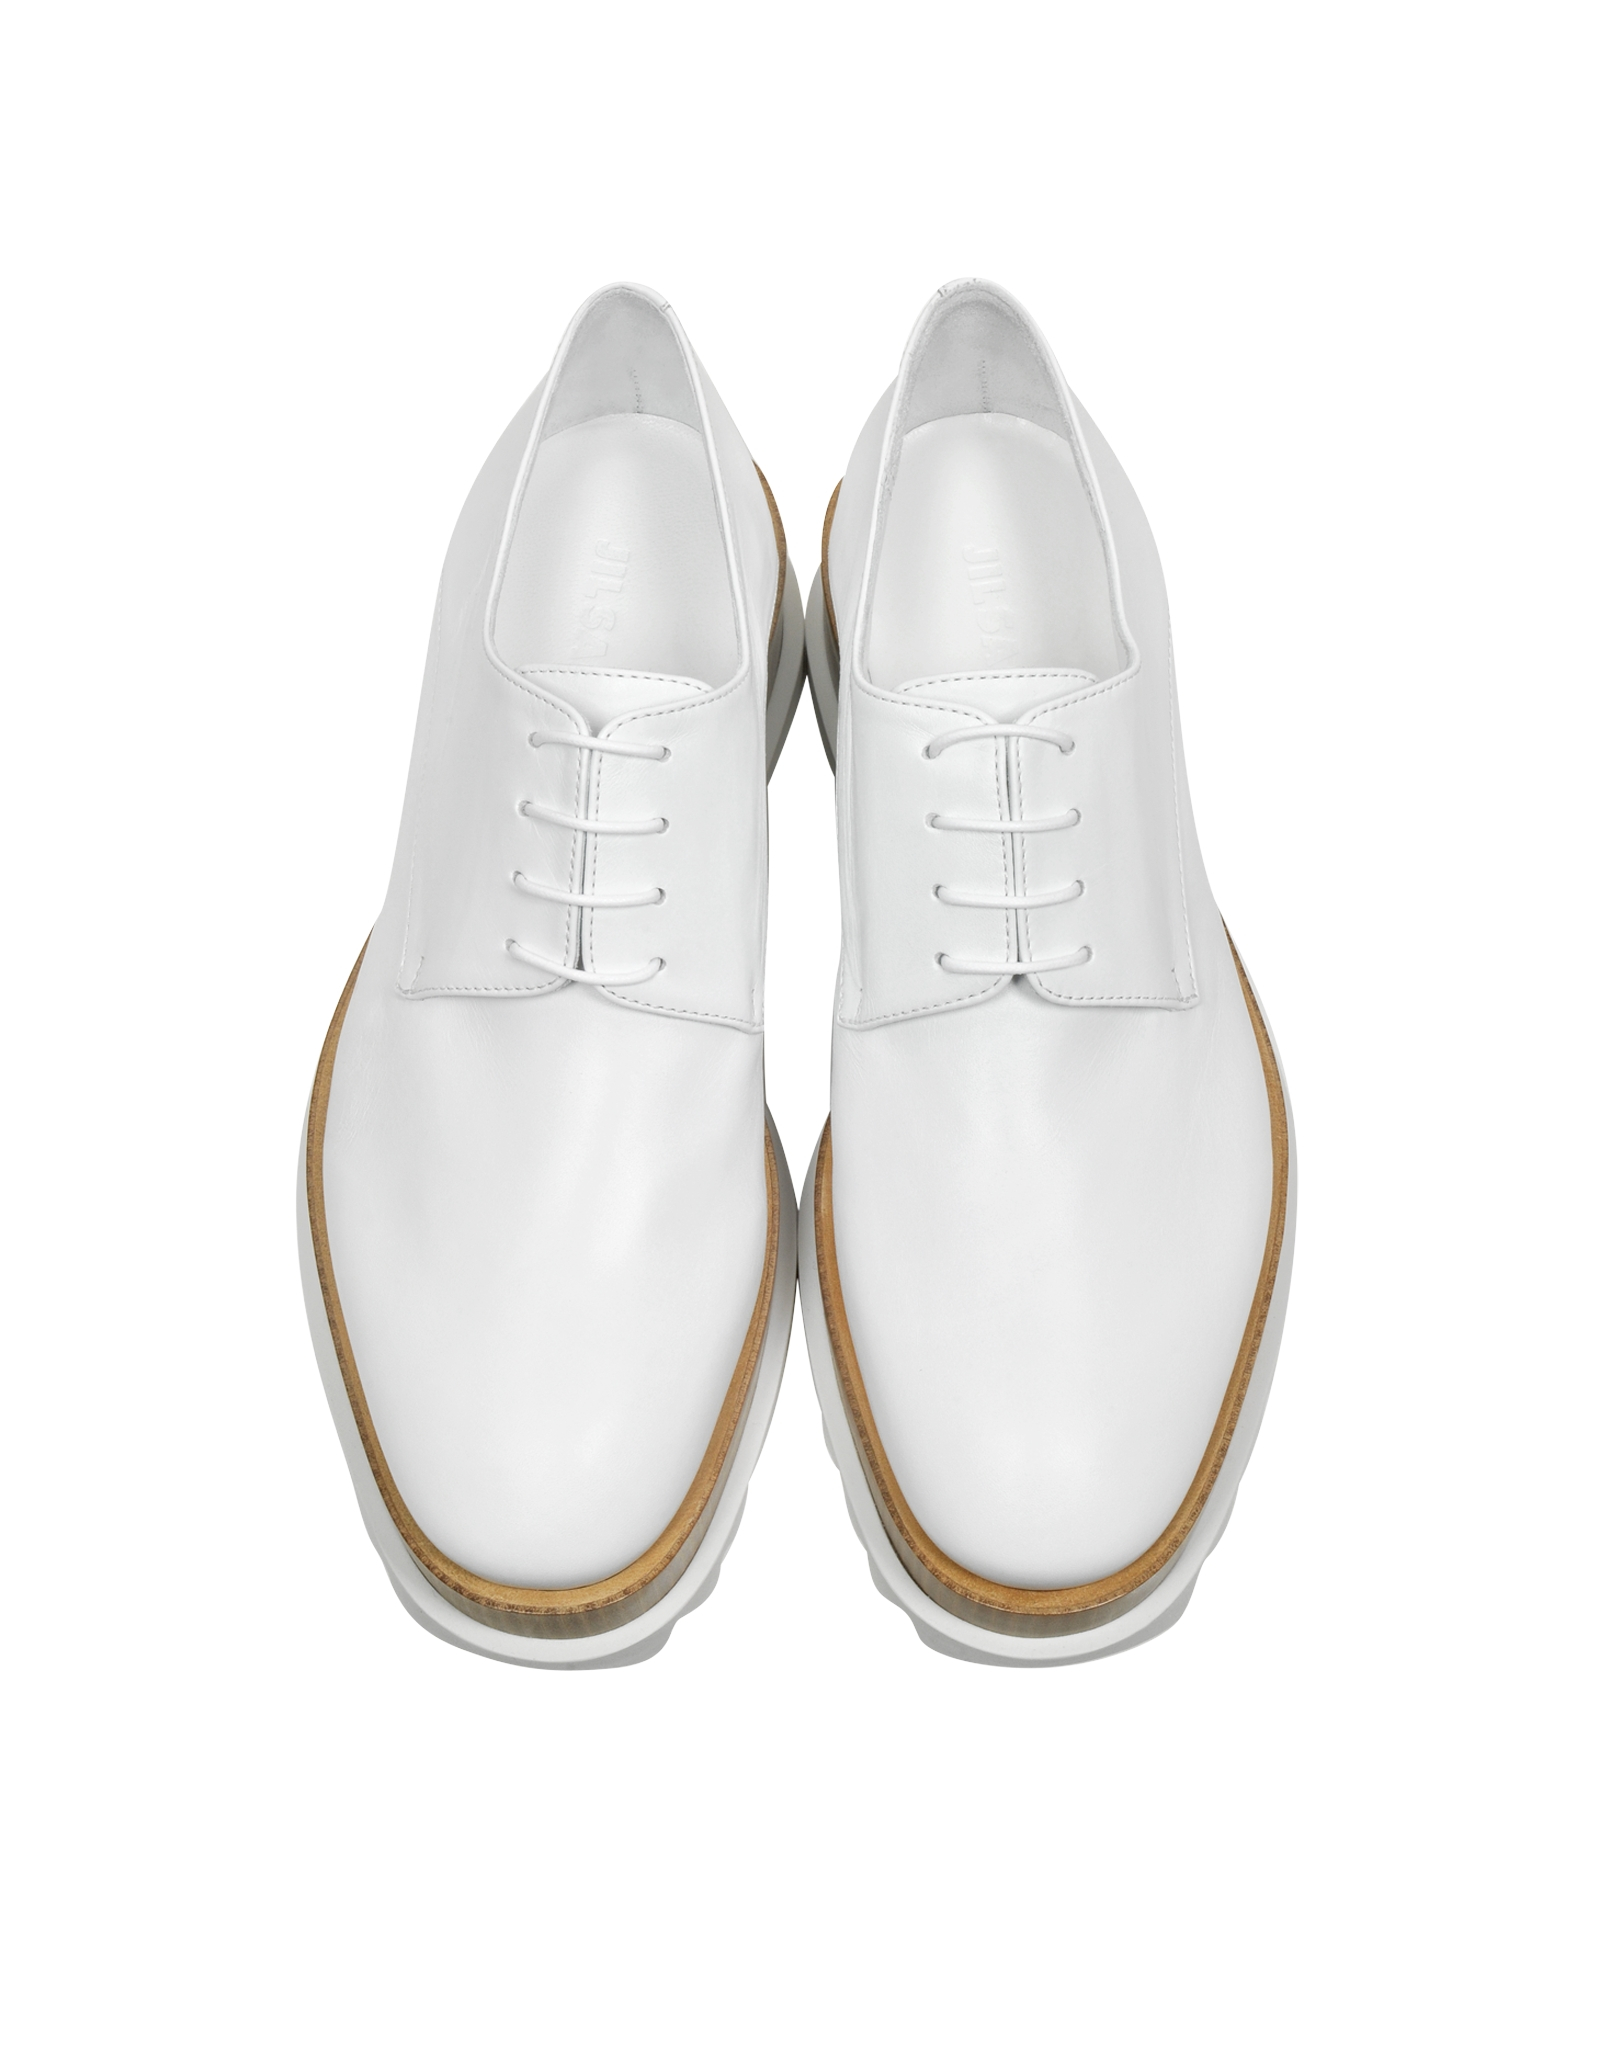 Leather Brogues - White Jil Sander